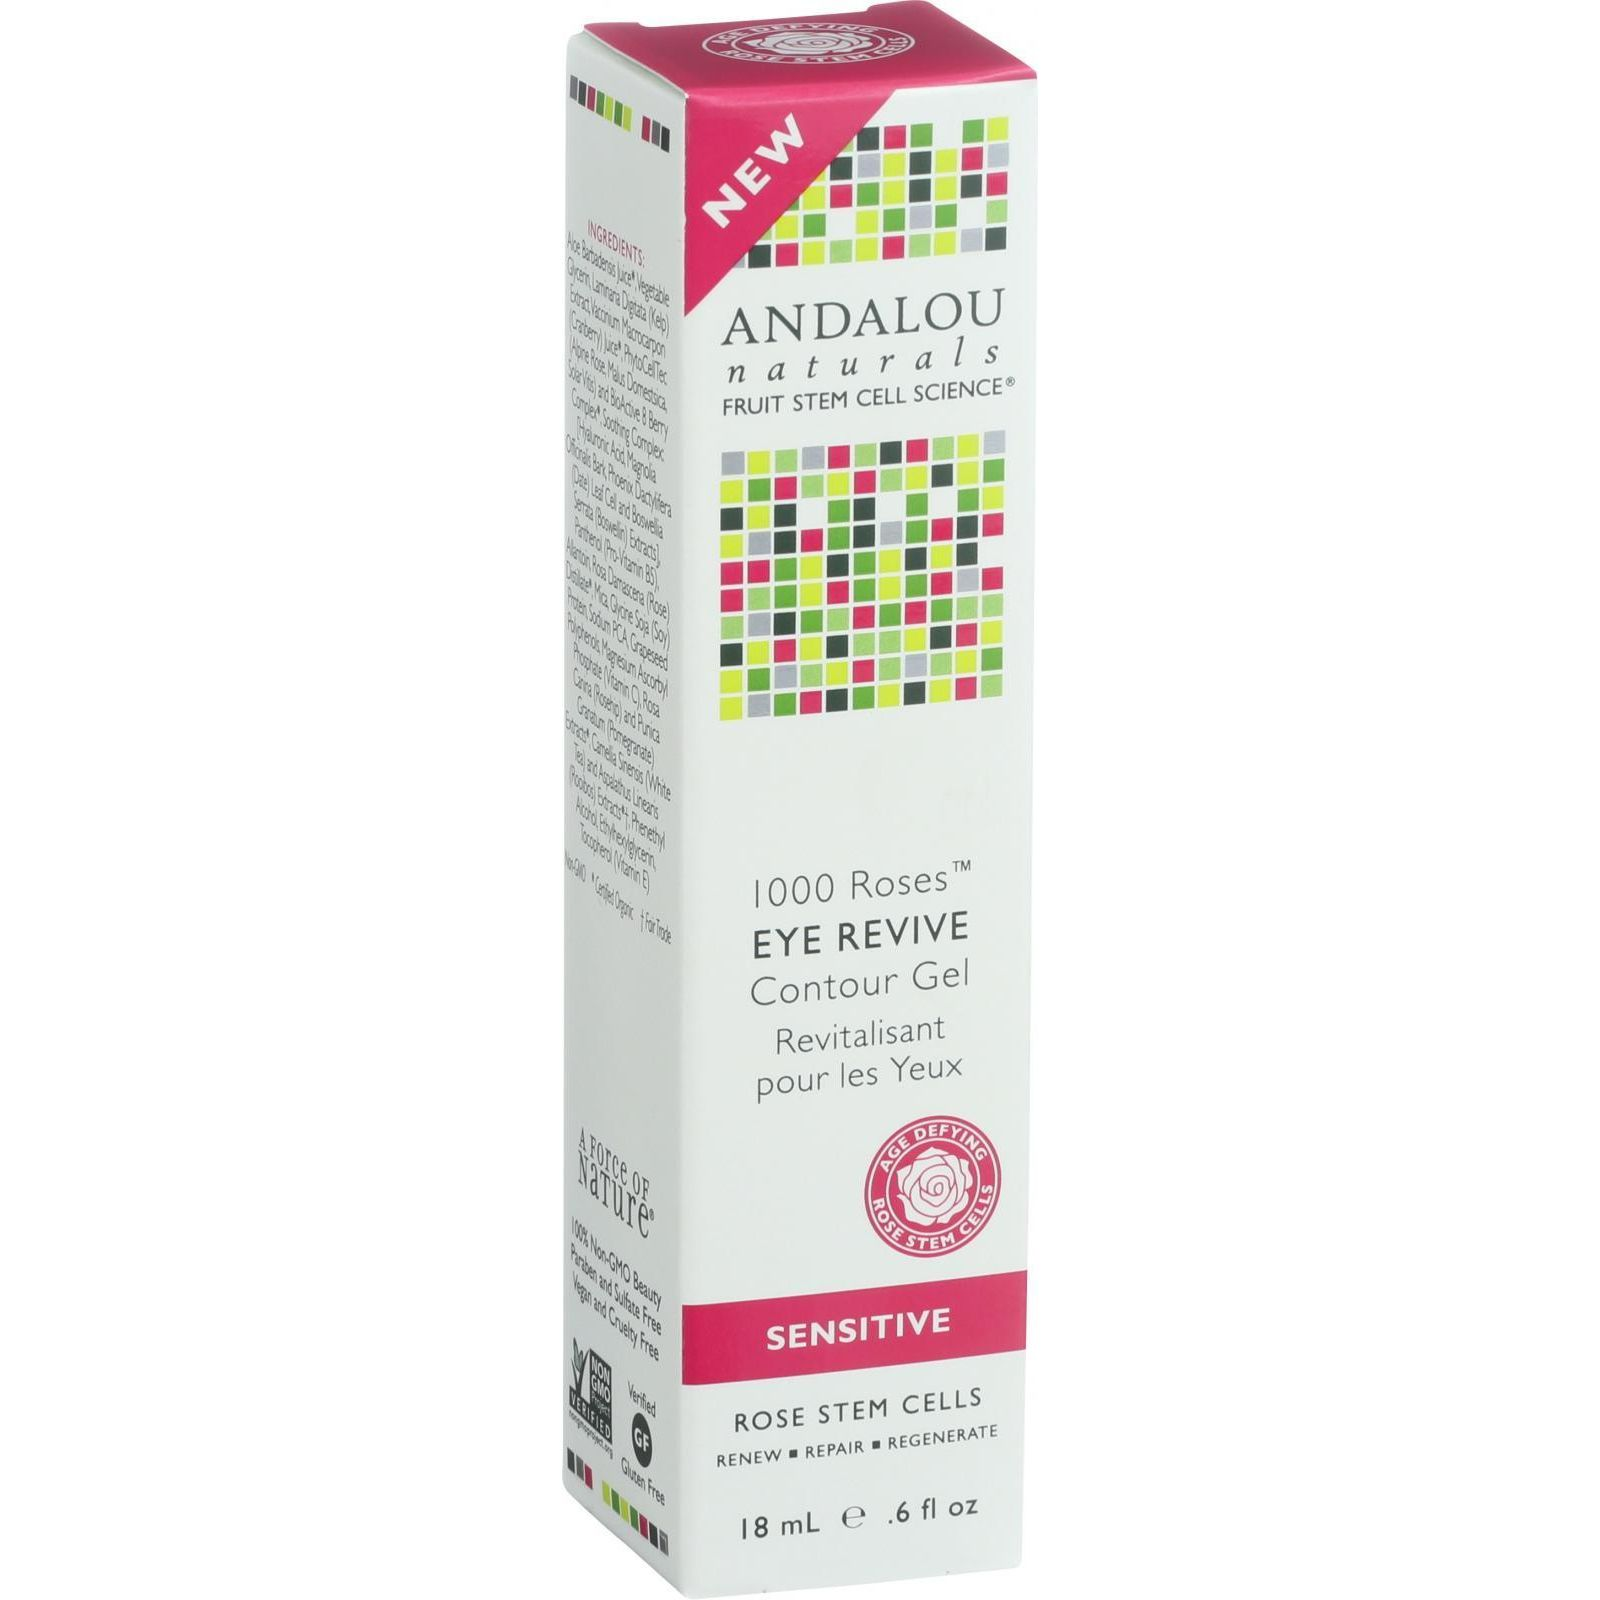 Andalou Naturals Eye Revive Contour Gel  1000 Roses  .6 oz